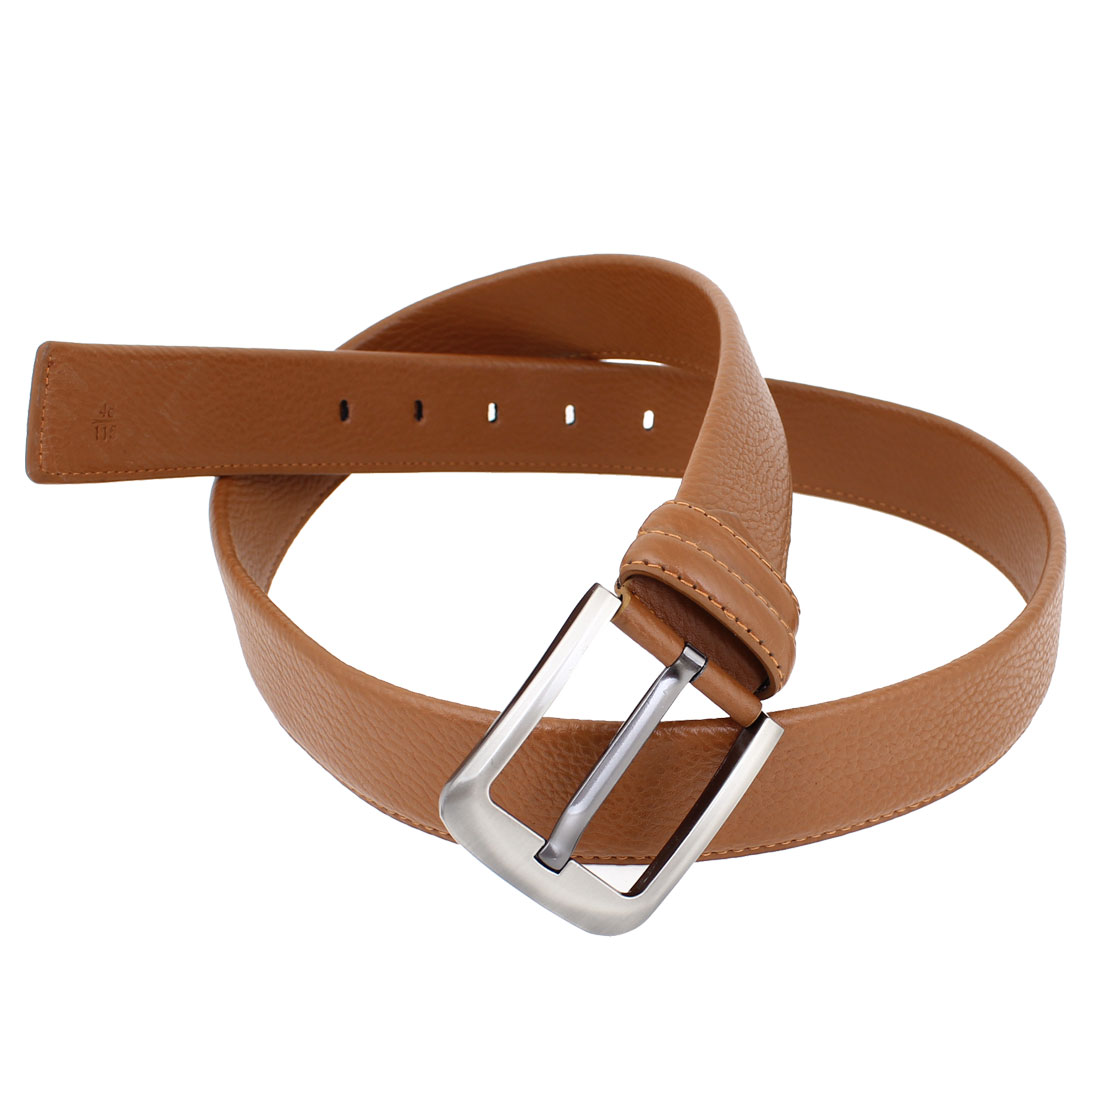 Single Prong Buckle Brown Faux Leather Adjustable Waist Belt for Man